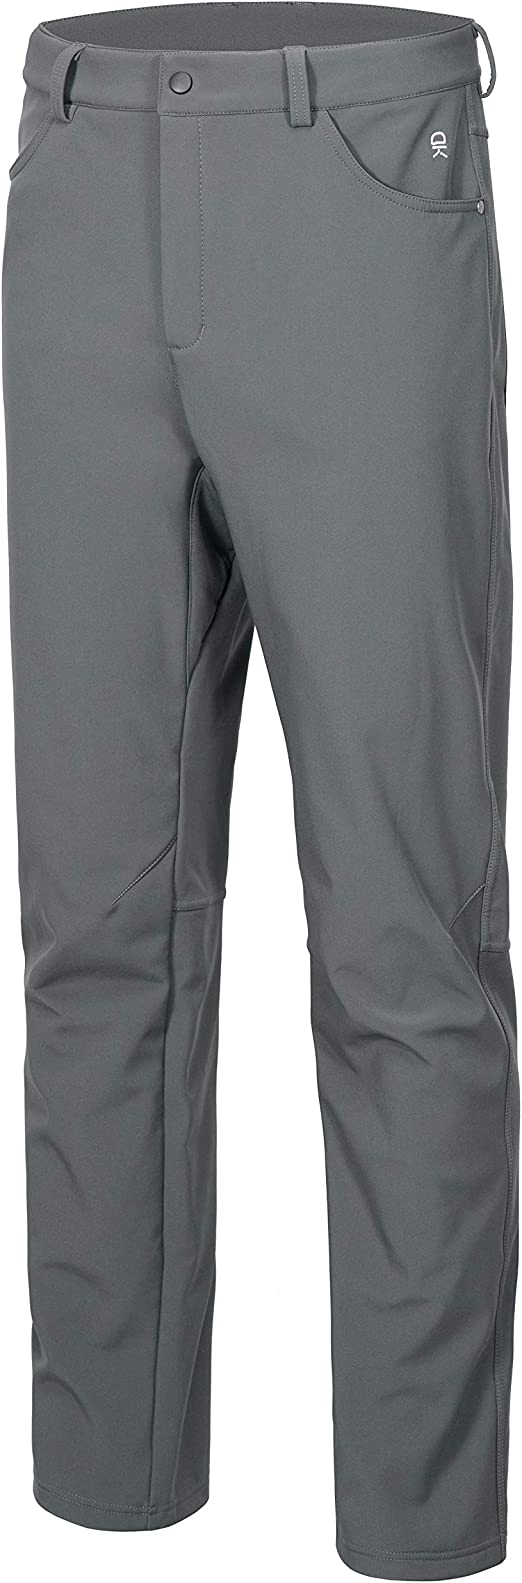 Little Donkey Andy Men's Winter Hiking Ski Pants, Softshell Pants, Fleece Lined and Water Repellant Gray Size M